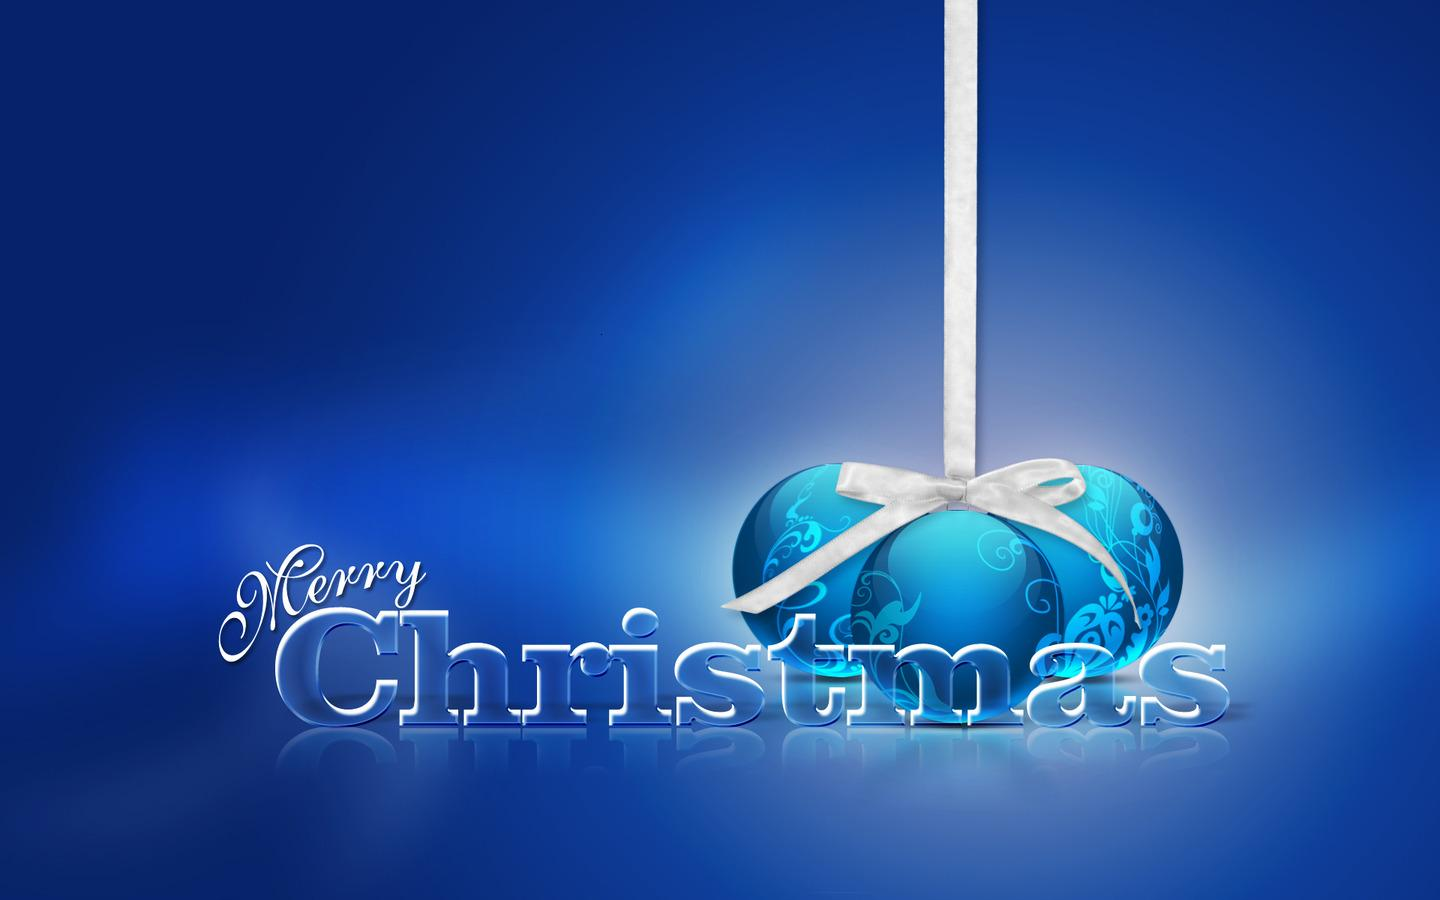 Beautiful Desktop Wallpapers 3d Christmas   ImgHD Browse and 1440x900